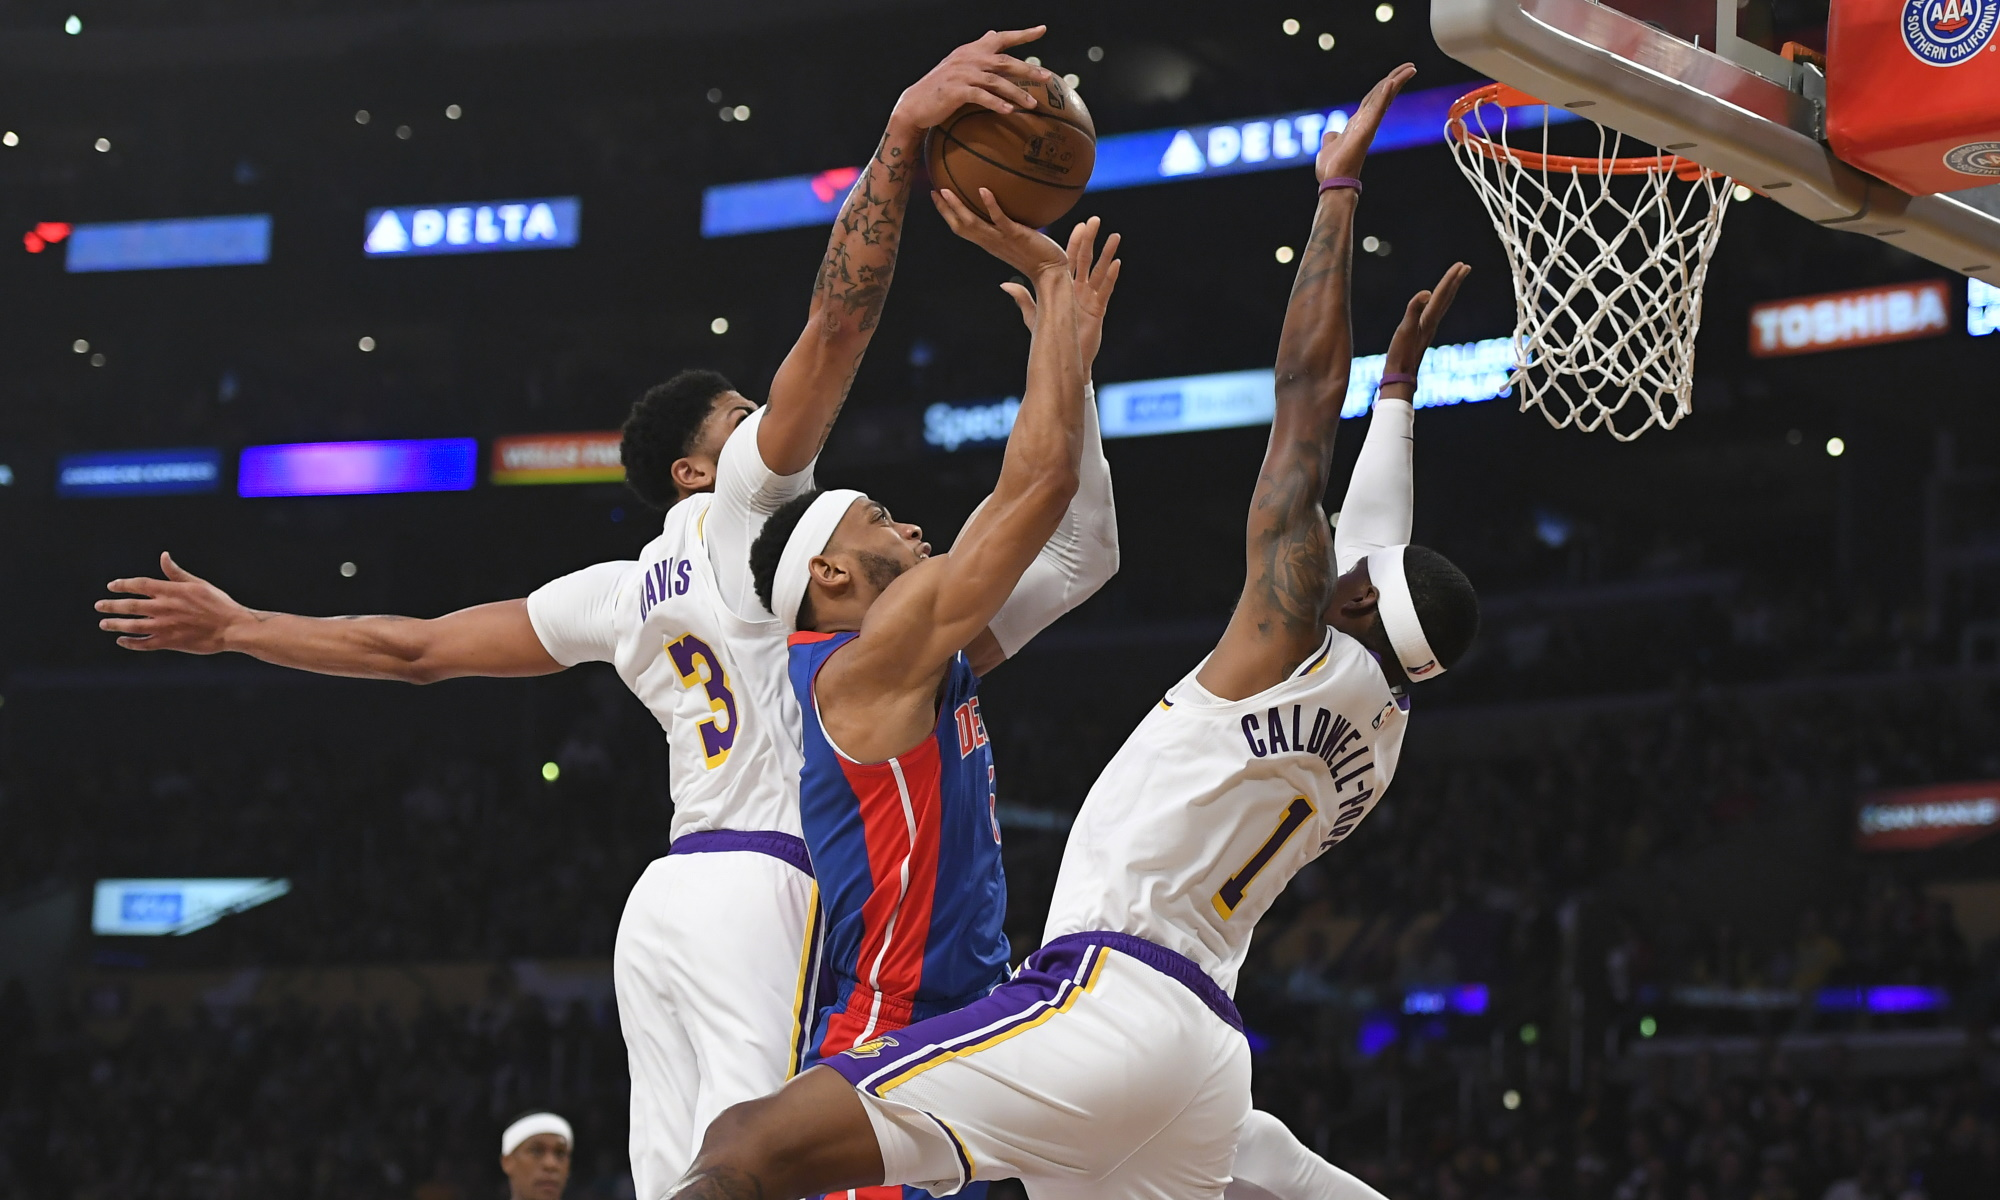 Anthony Davis, Bruce Brown and Kentavious Caldwell-Pope. Los Angeles Lakers vs Detroit Pistons at STAPLES Center